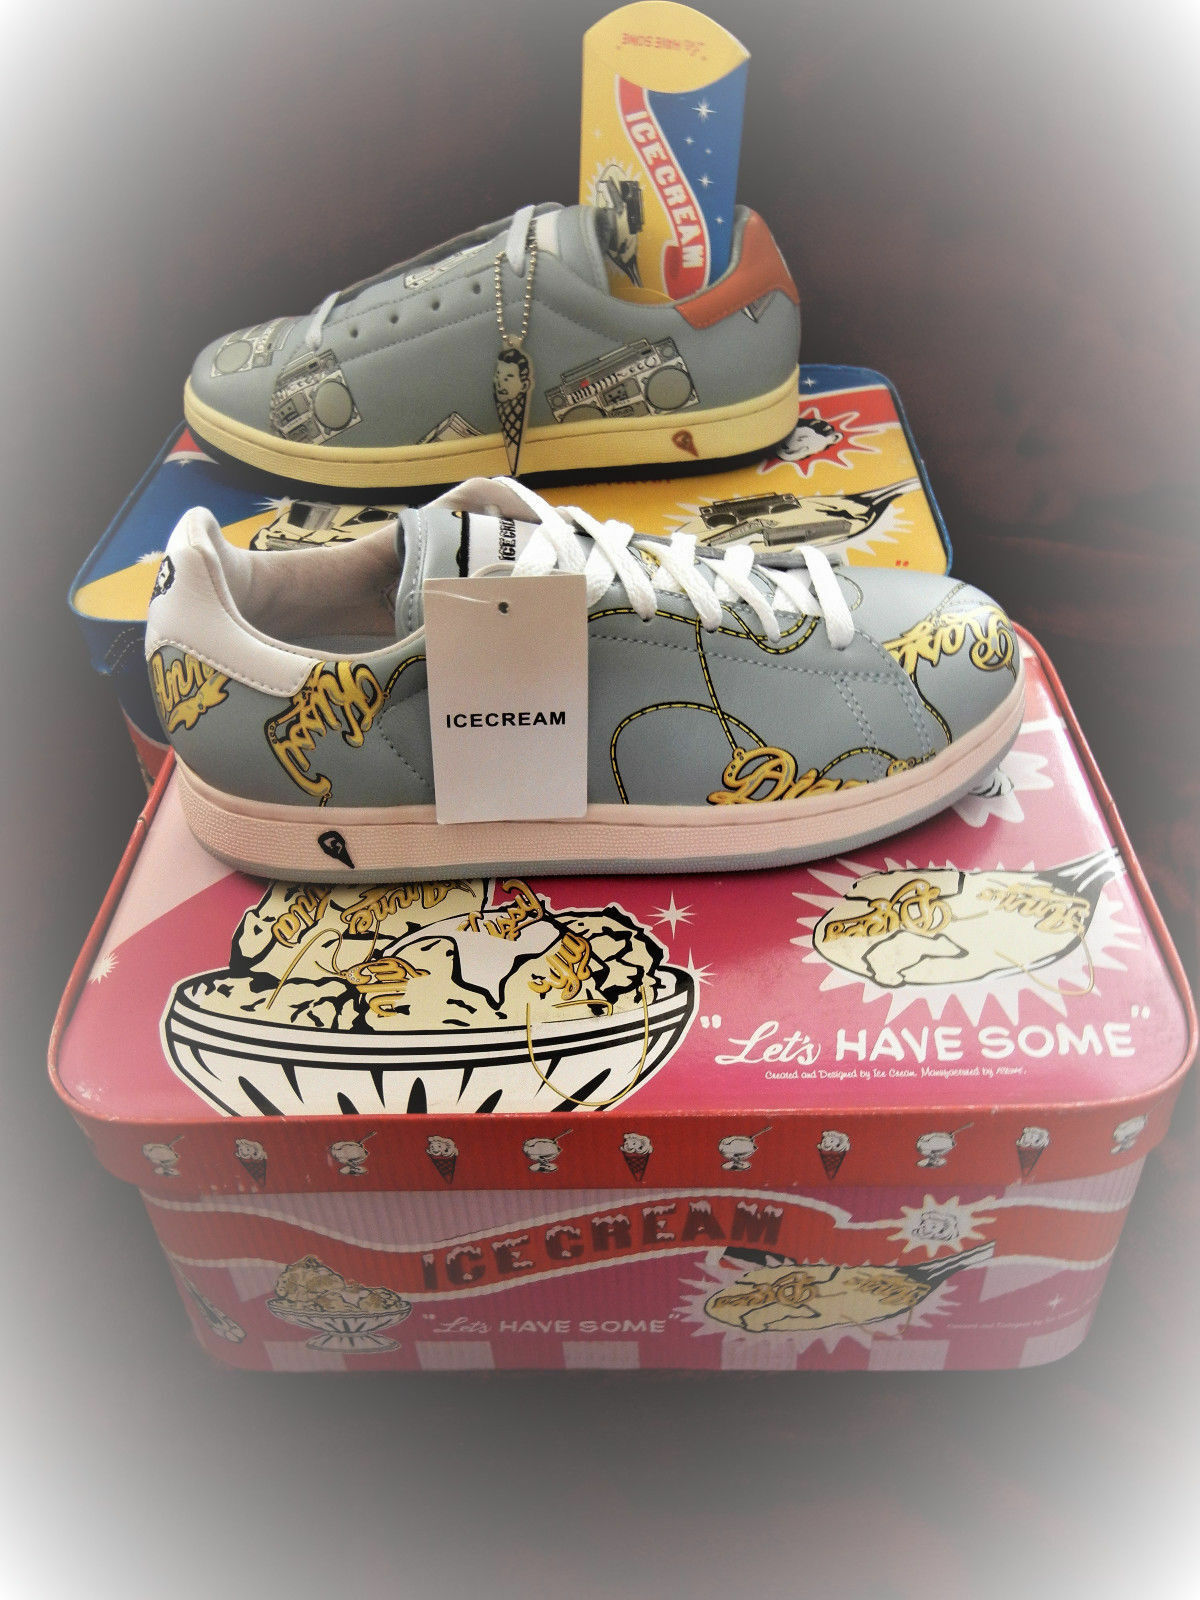 Reebok Ice Cream  JERSEY  856  SNEAKERS  Boutiques DS NameChain SIZE 8  ICECREAM